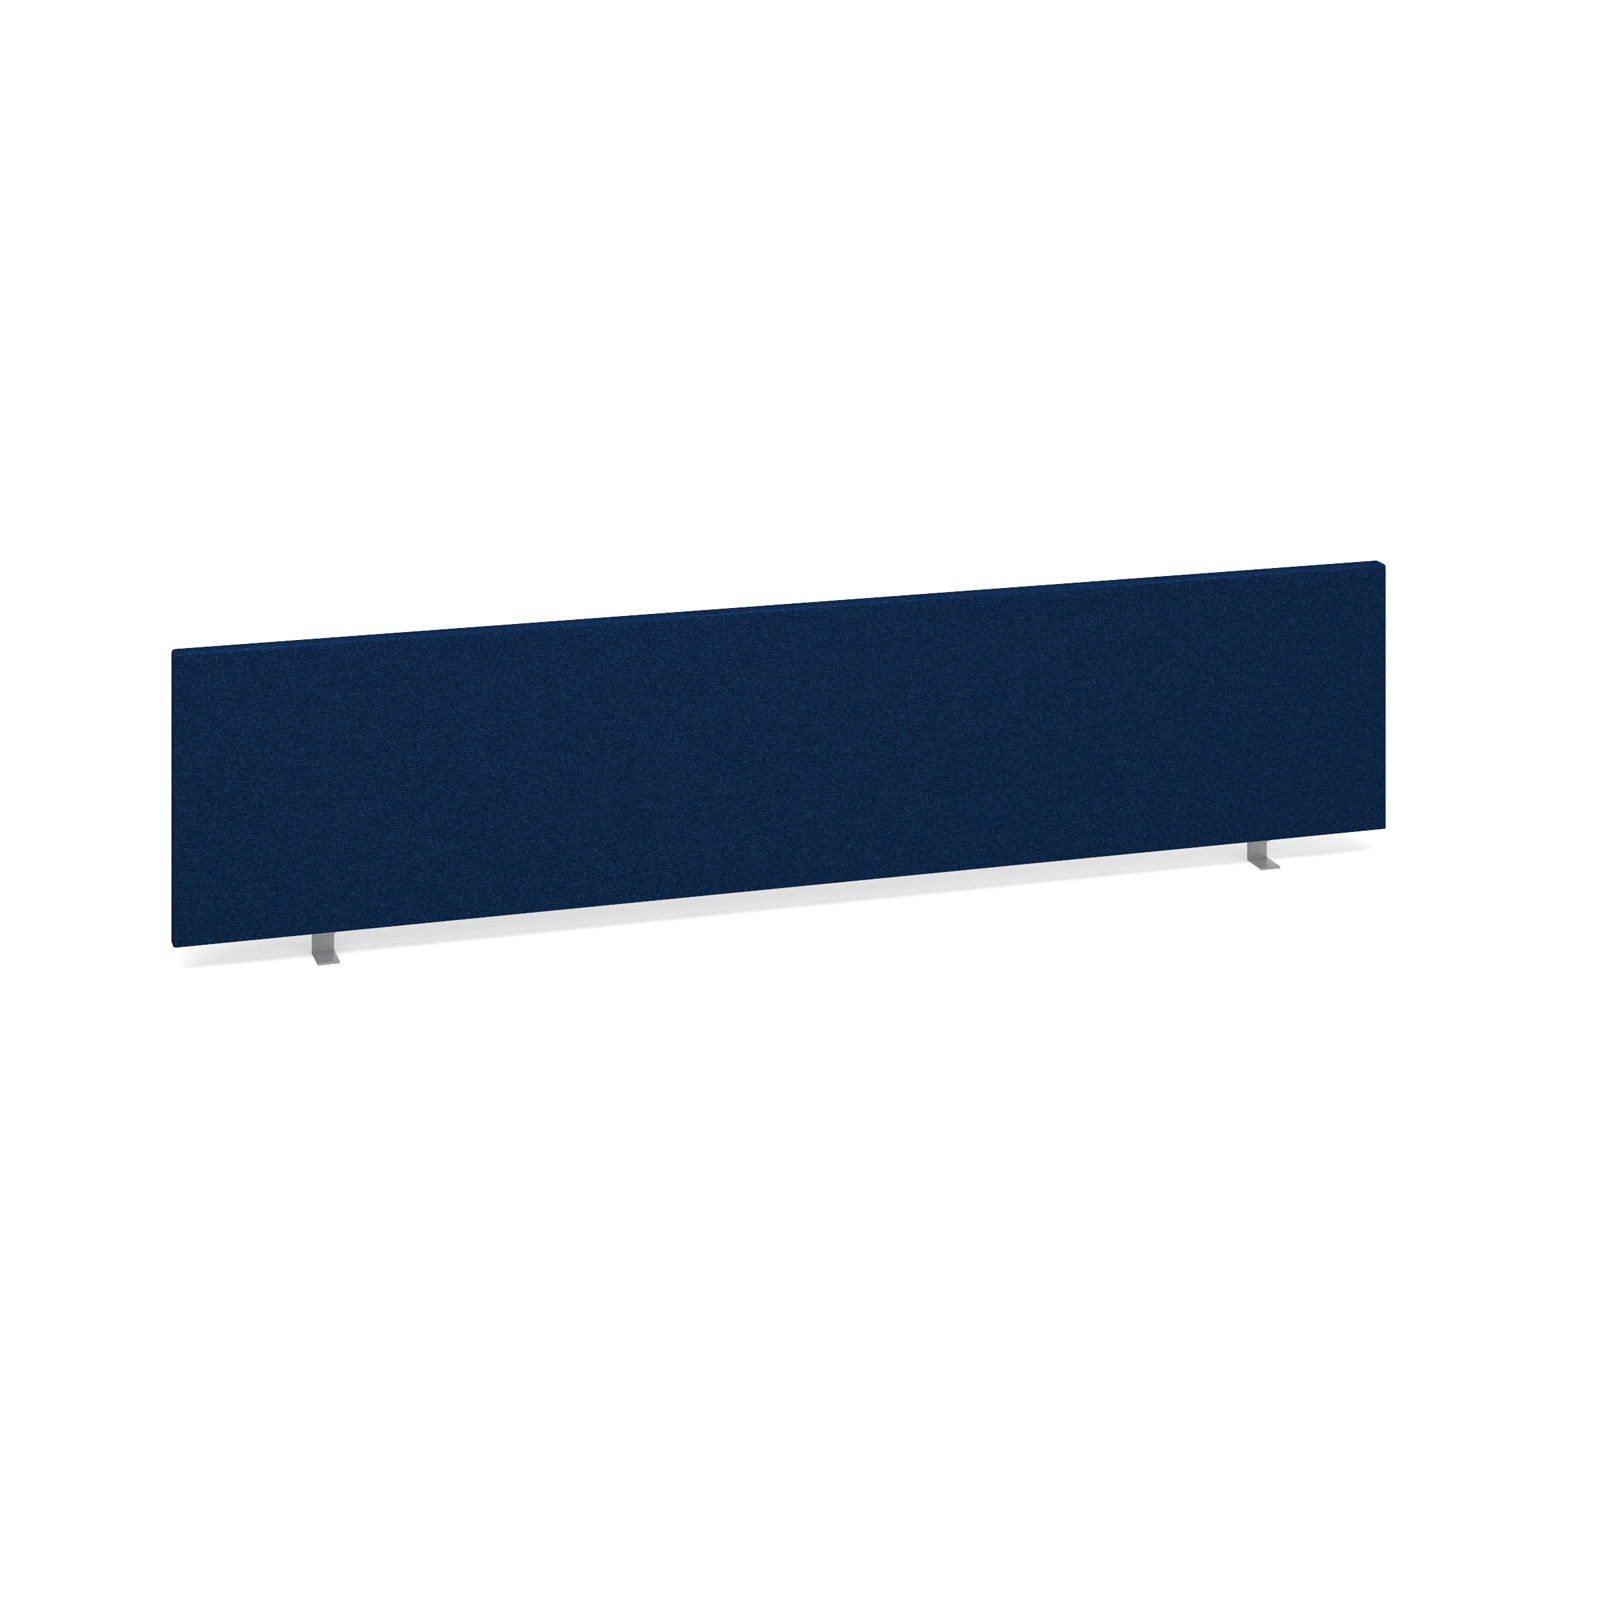 Straight Tops Straight desktop fabric screen 1800mm x 400mm - blue